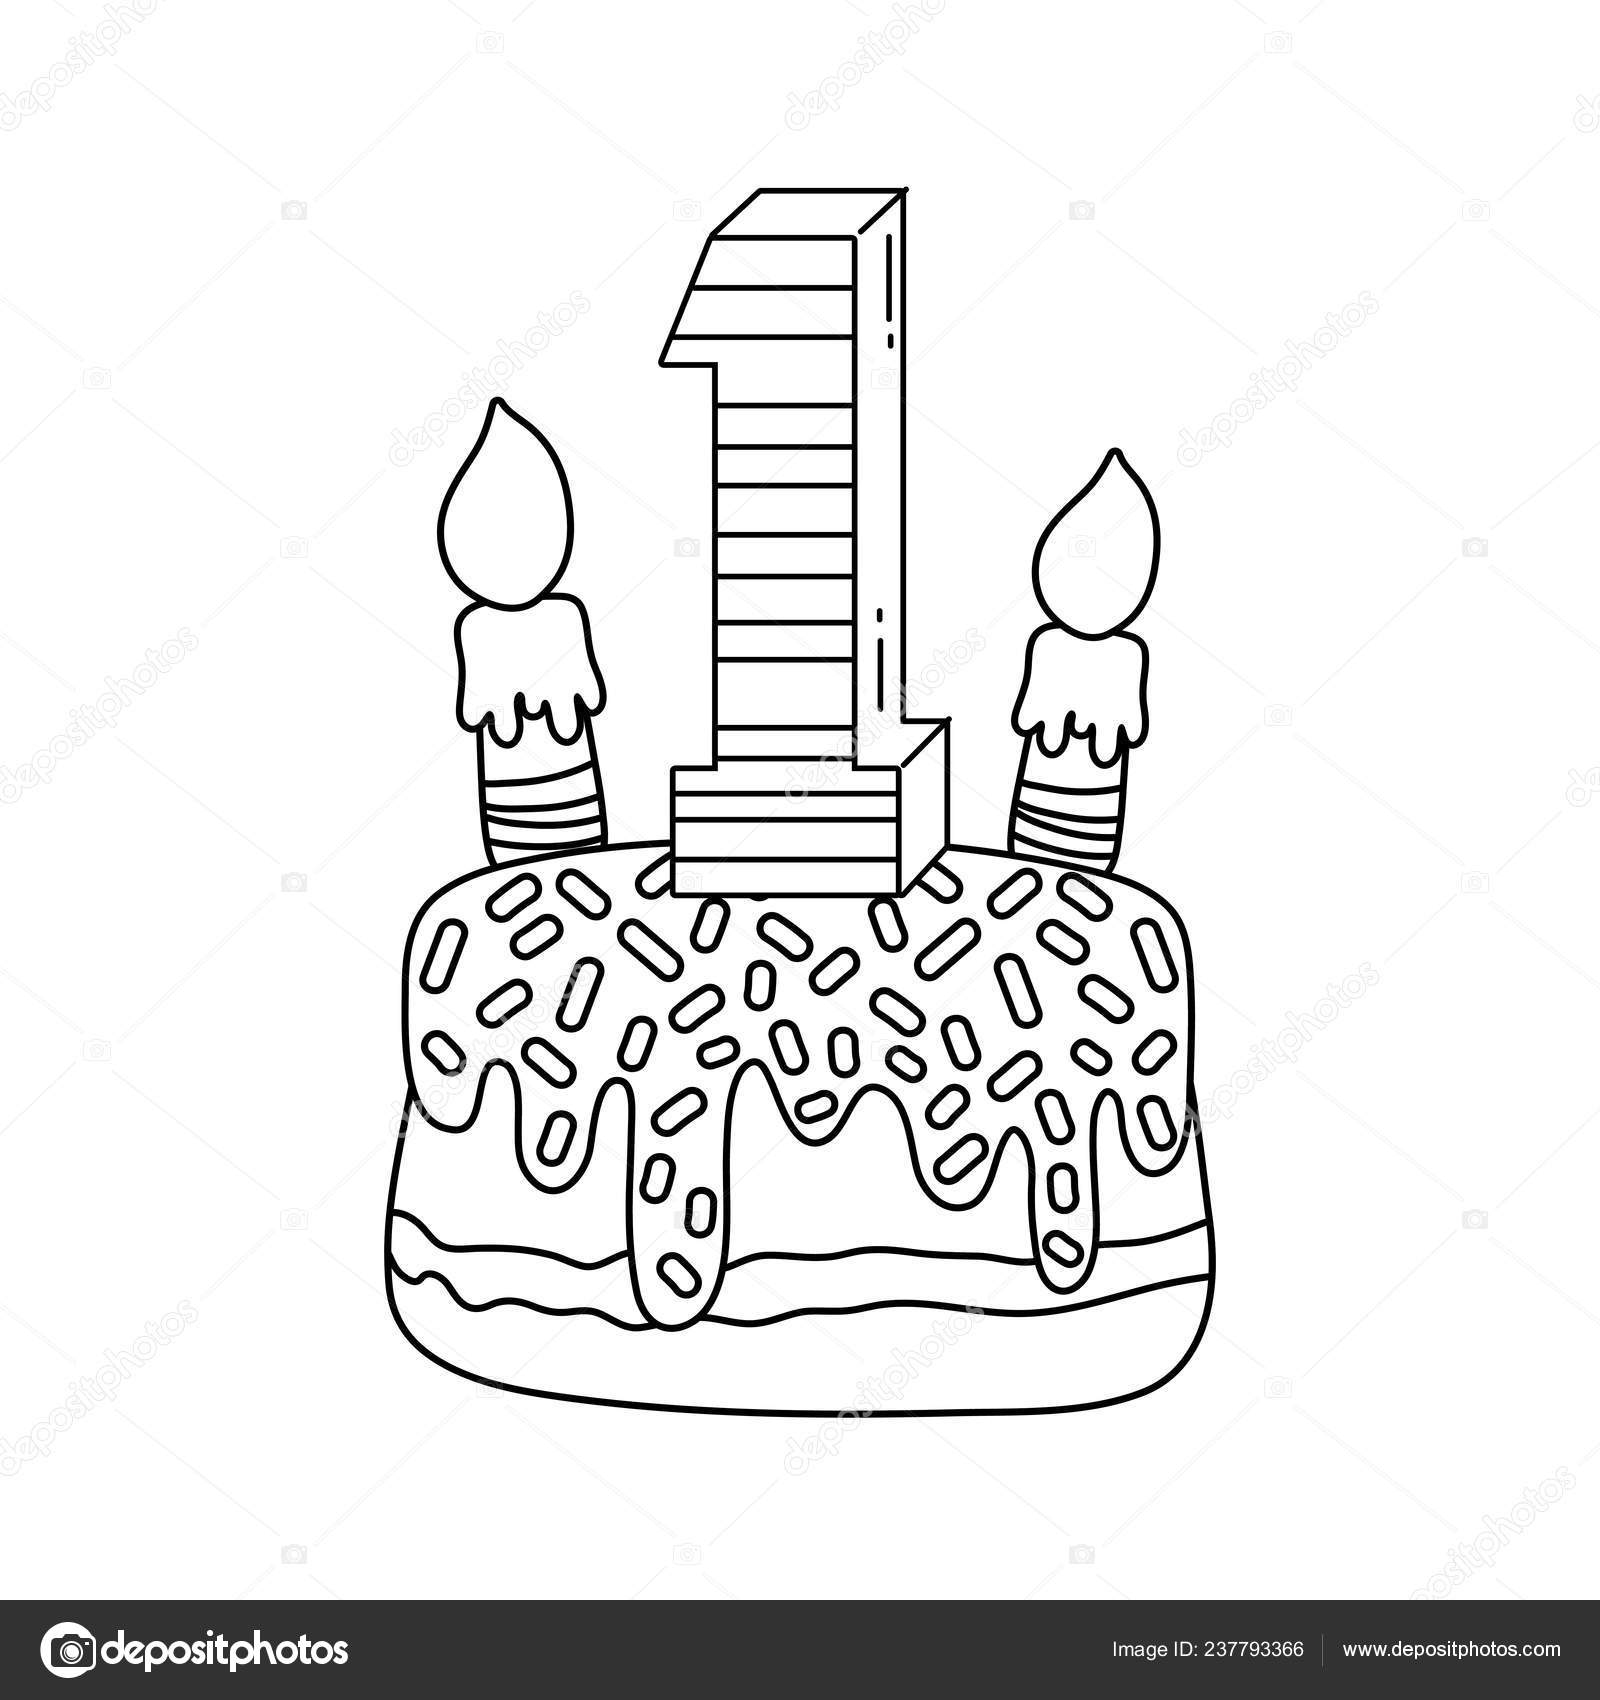 Kids Birthday Cake Candle Cute Cartoons Vector Illustration Graphic